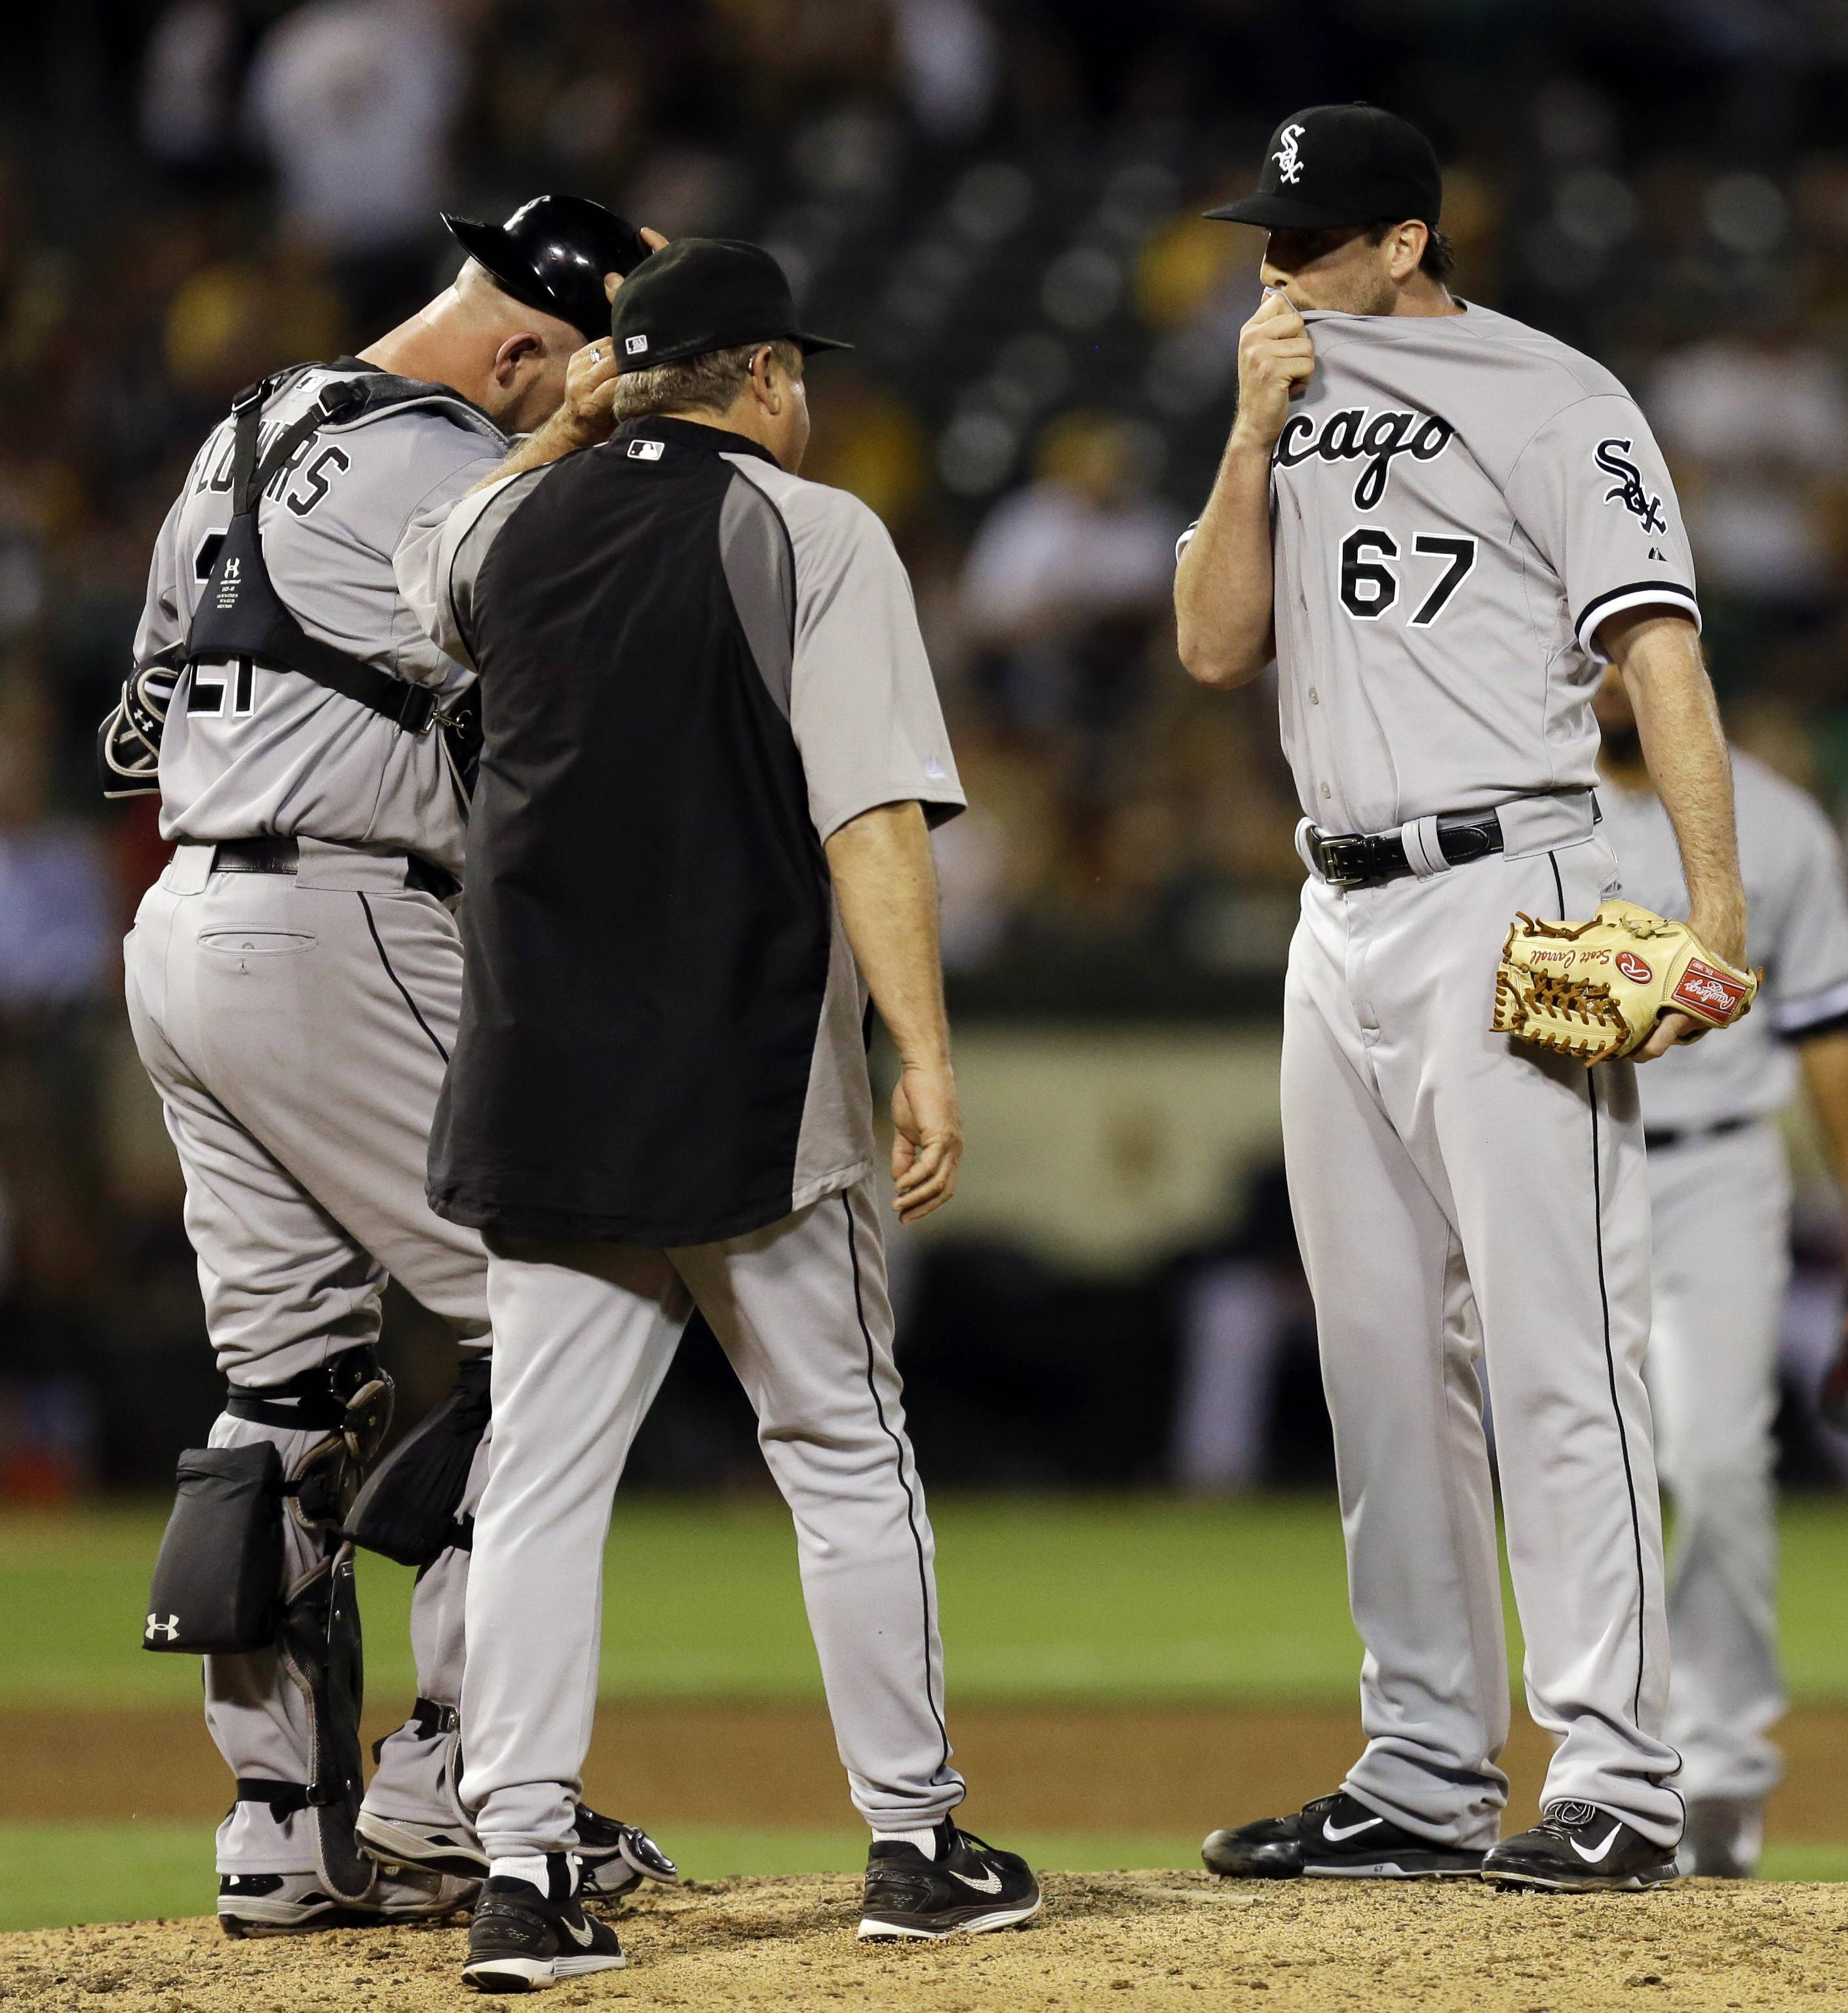 Chicago White Sox pitcher Scott Carroll (67) is visited on the pitching mound by coach Don Cooper in the fifth inning of a baseball game against the Oakland Athletics, Tuesday, May 13, 2014, in Oakland, Calif. (AP Photo)